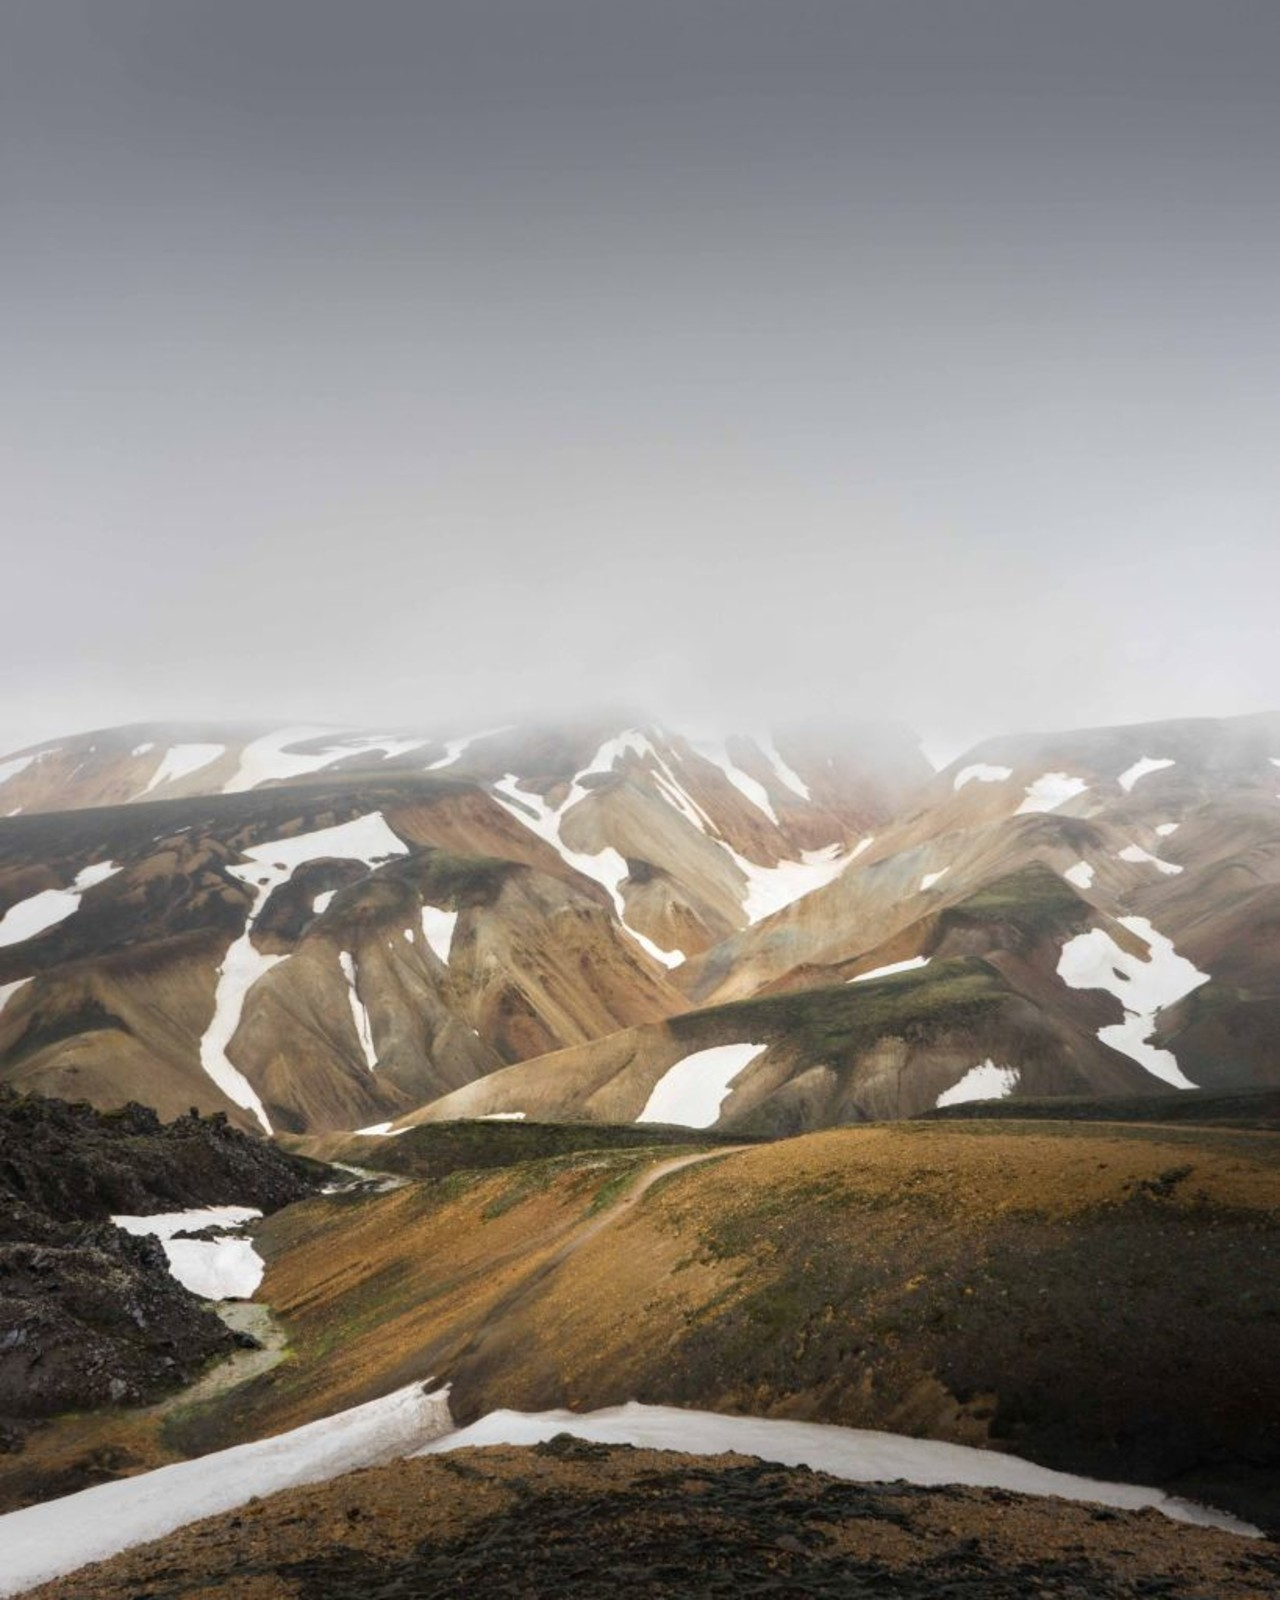 The colorful rhyolite mountains seen as you trek from Landmannalaugar to Thorsmork on the Laugavegur trail in the Icelandic highlands.